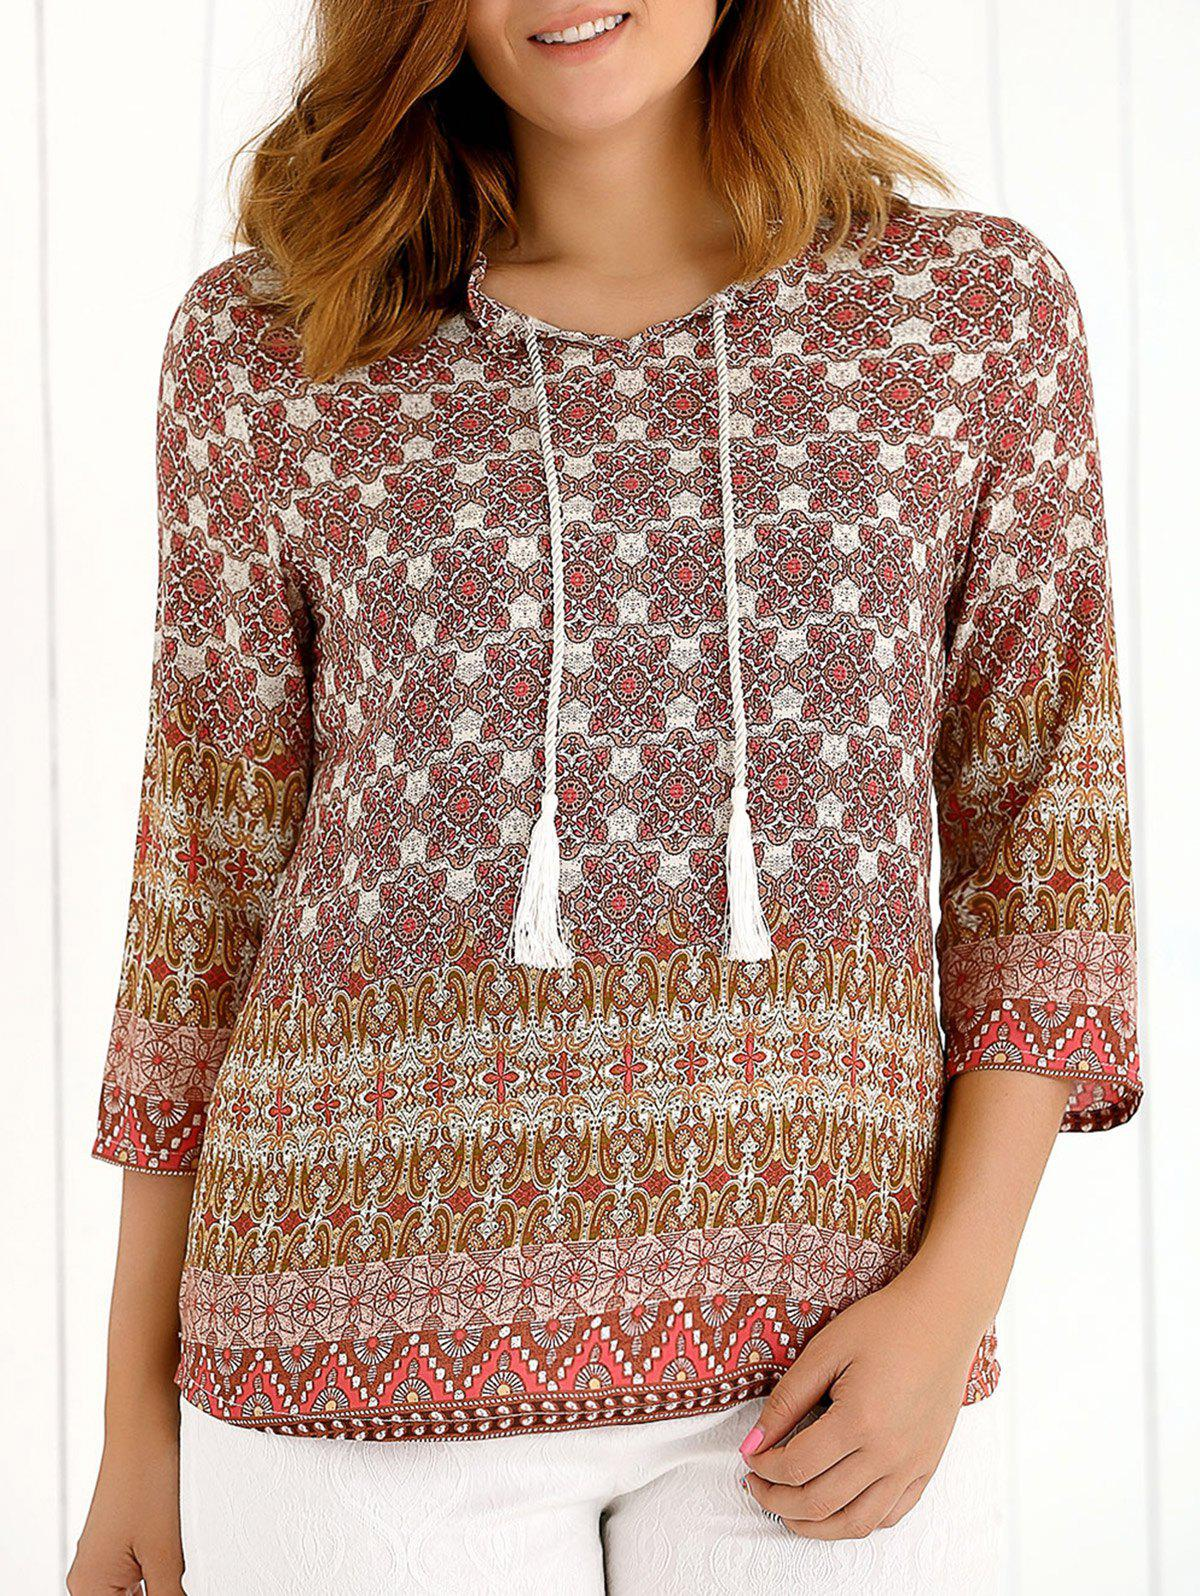 Tassel Tribal Print 3/4 Sleeves Blouse - COLORMIX 4XL